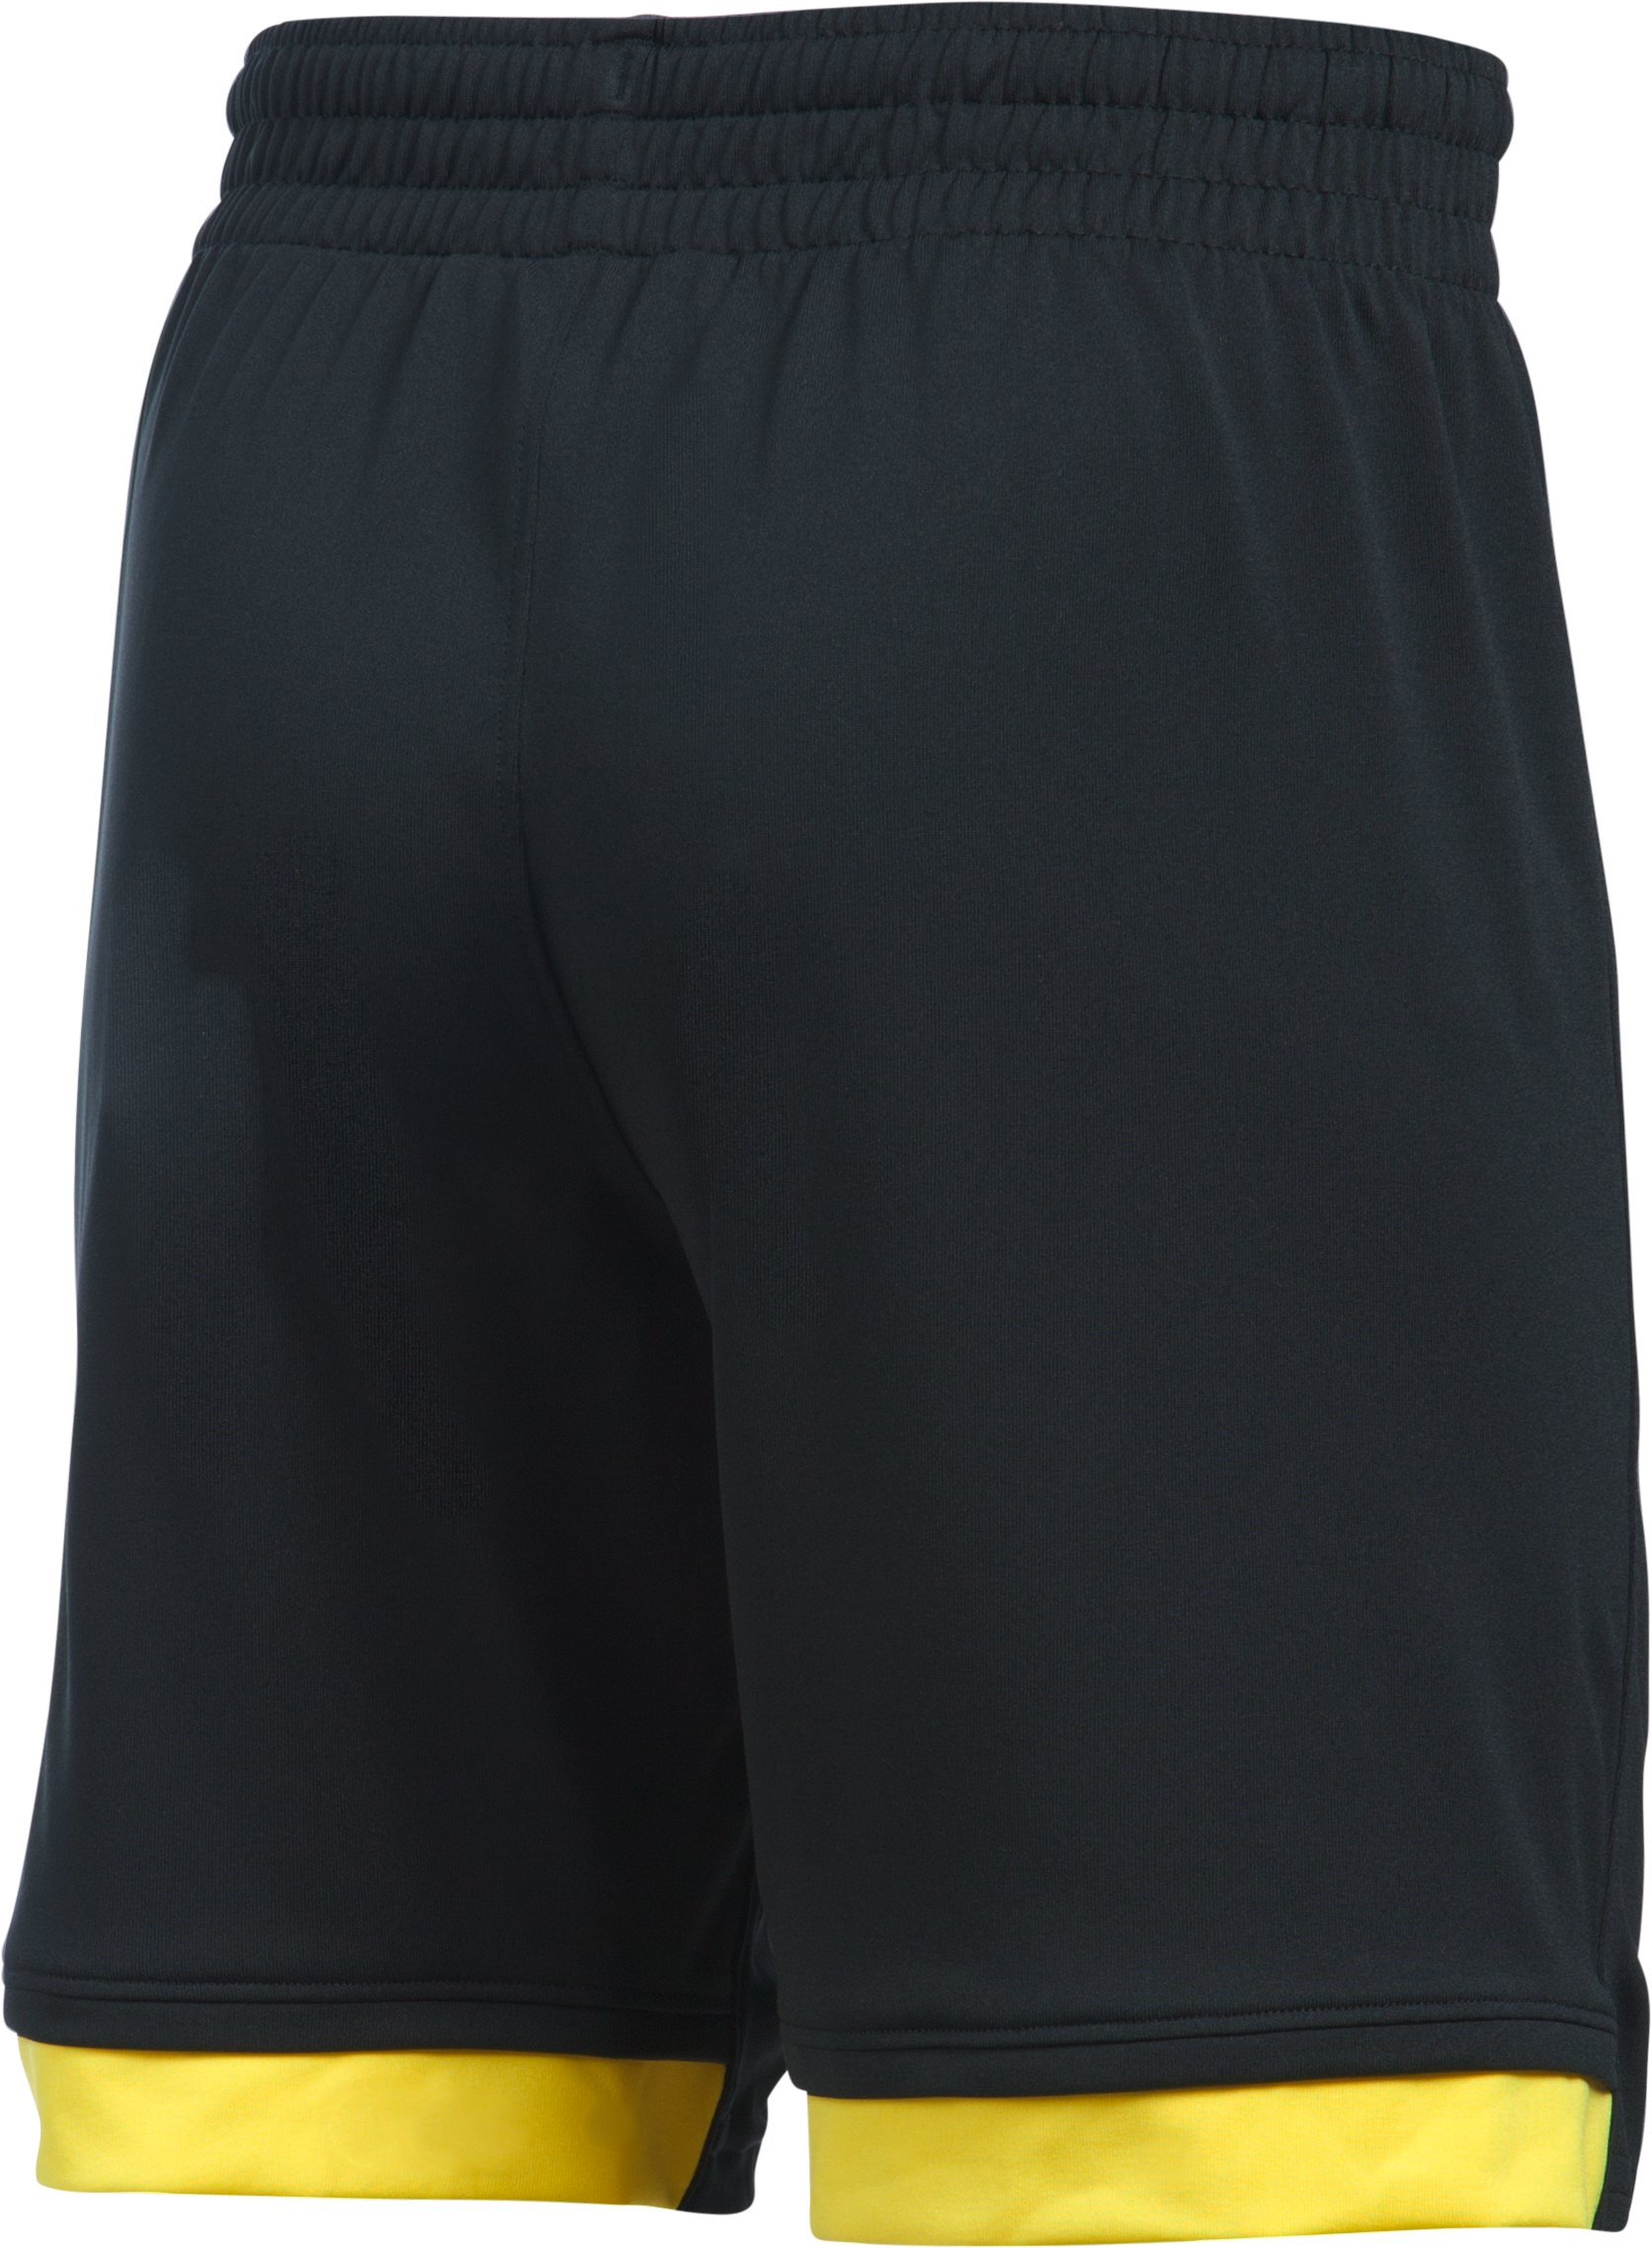 Kids' Colo-Colo Replica Shorts, Black ,